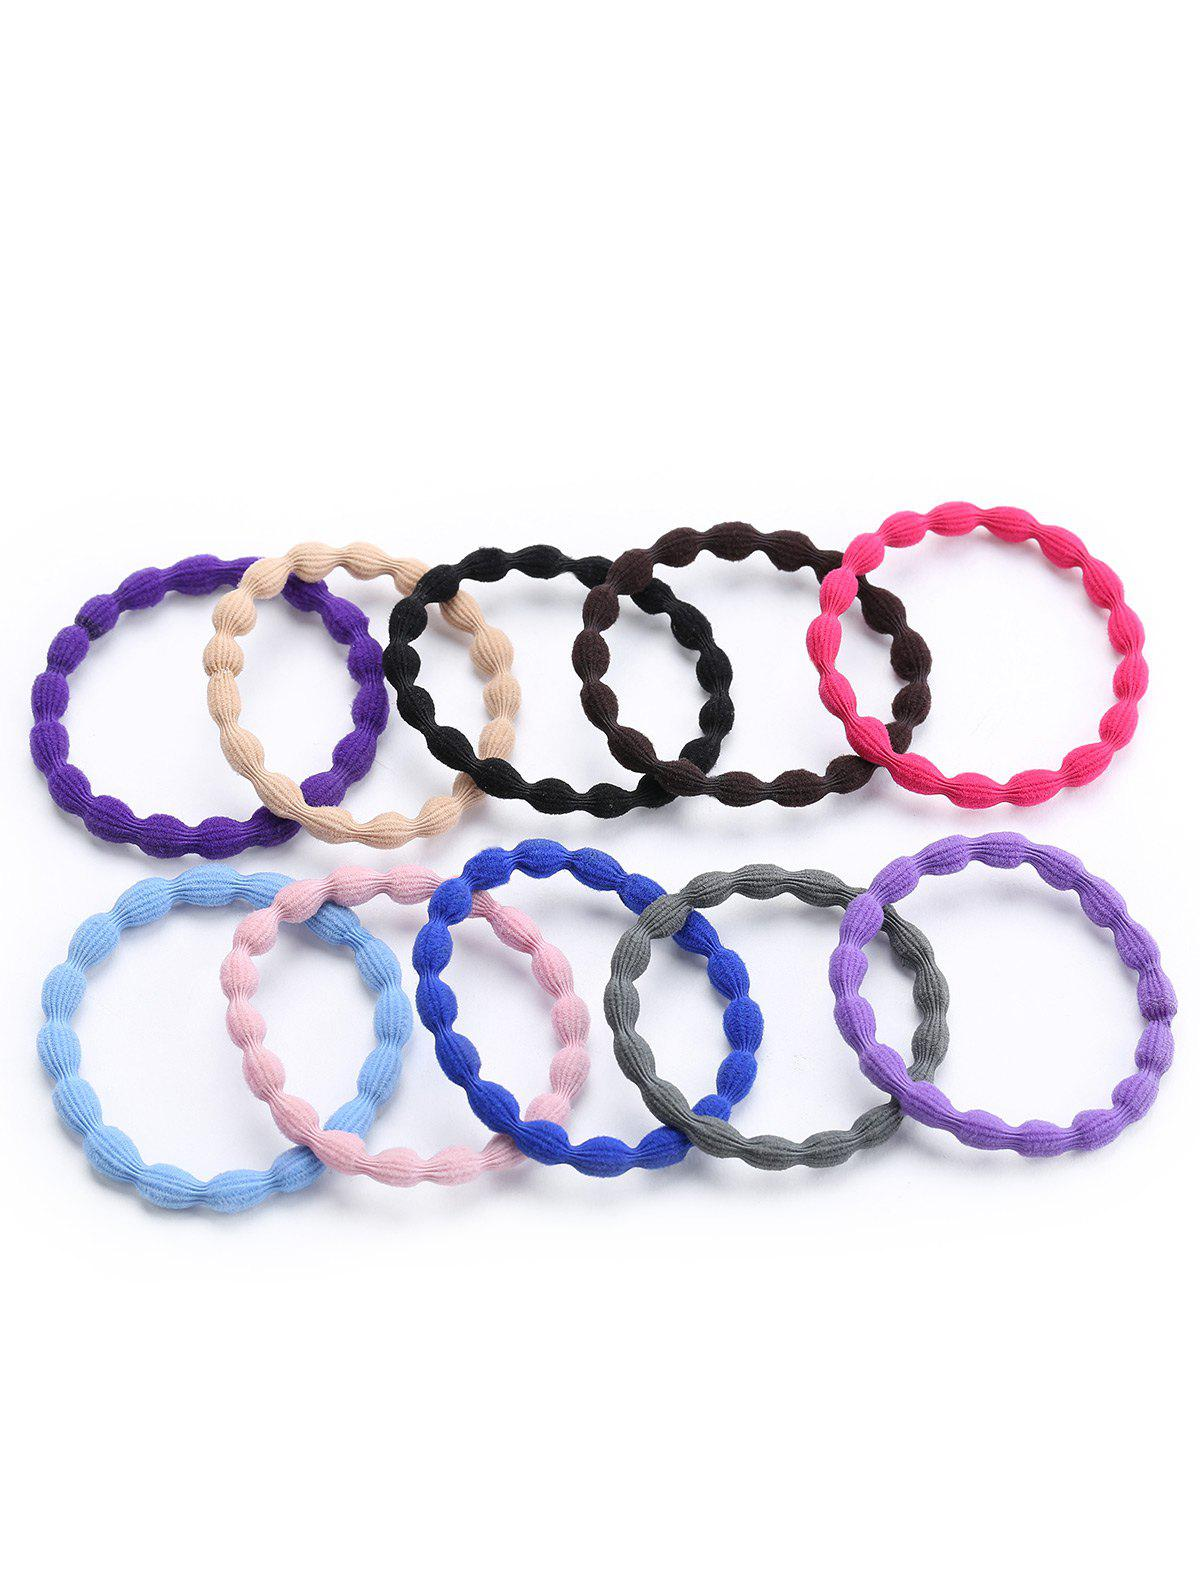 Unique Simple Elastic Hair Band Set